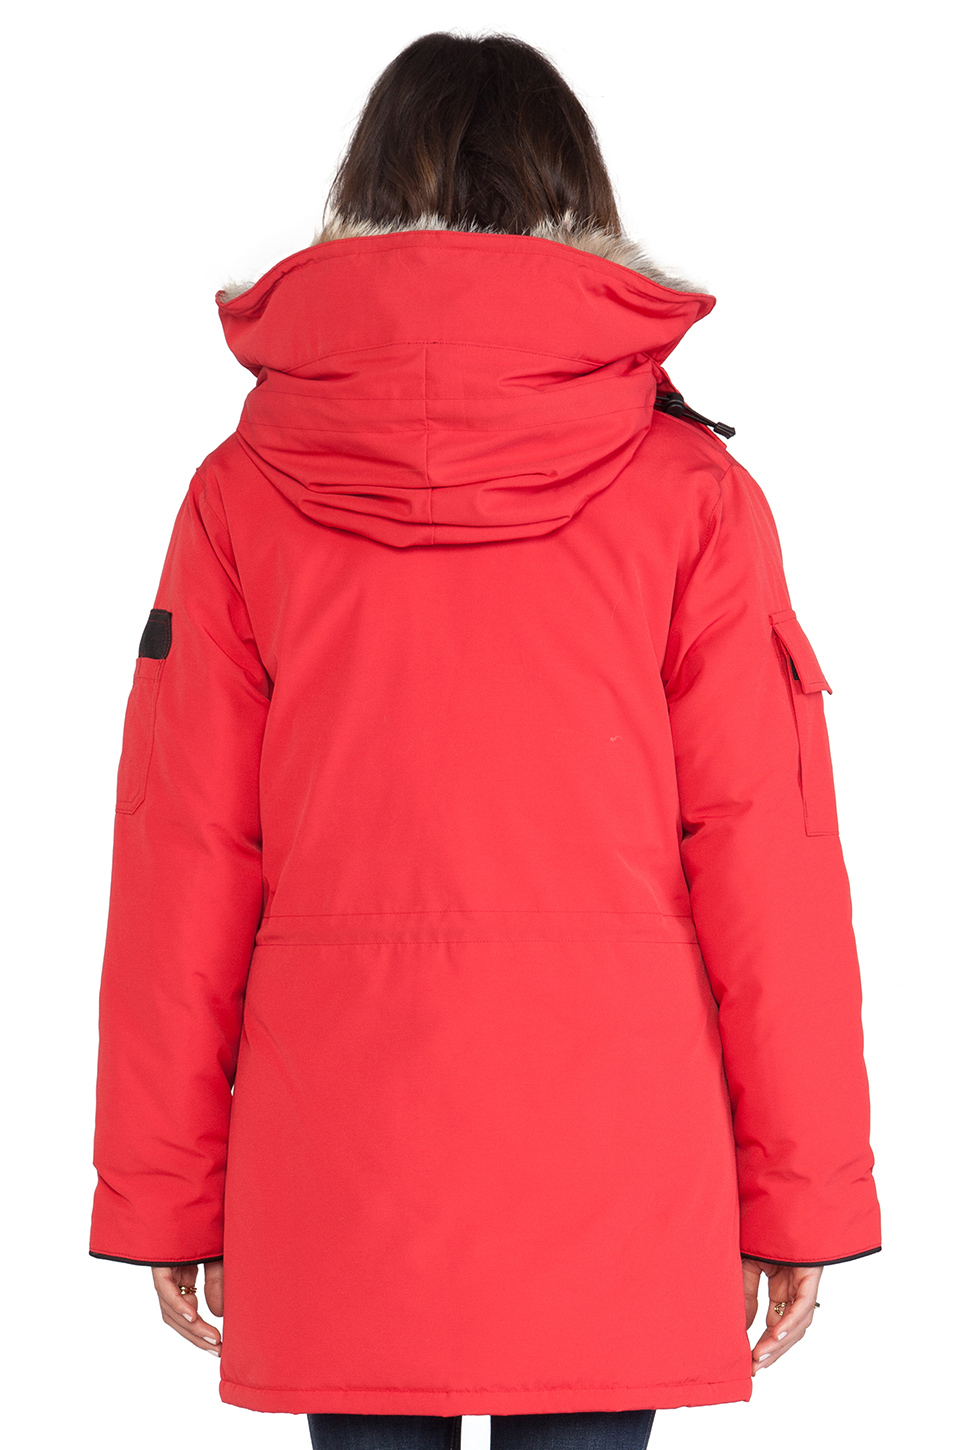 Canada Goose montebello parka online official - Canada goose Expedition Parka With Coyote Fur Trim in Red | Lyst